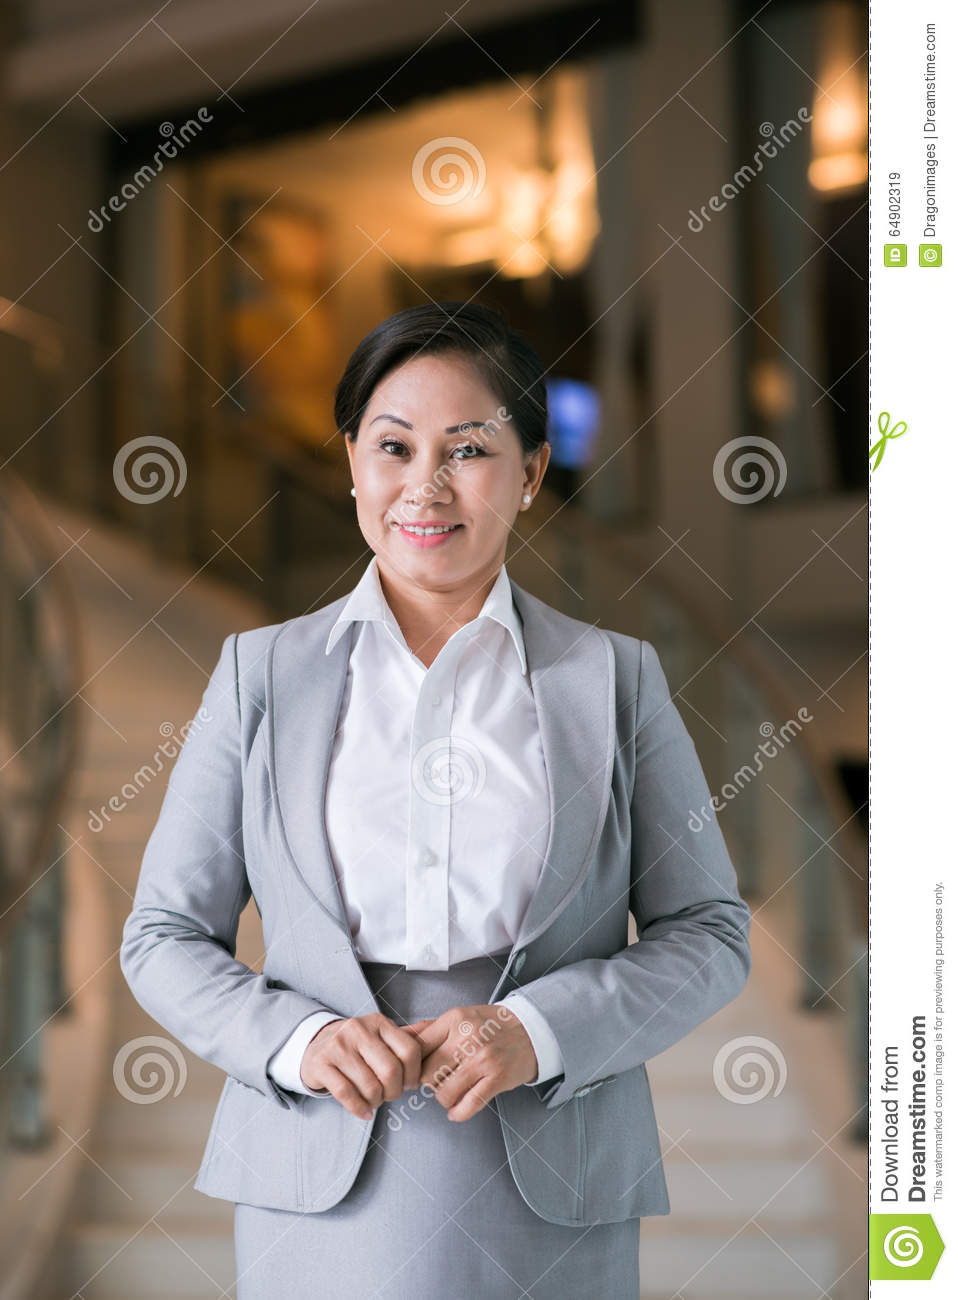 Gallery mature thick woman